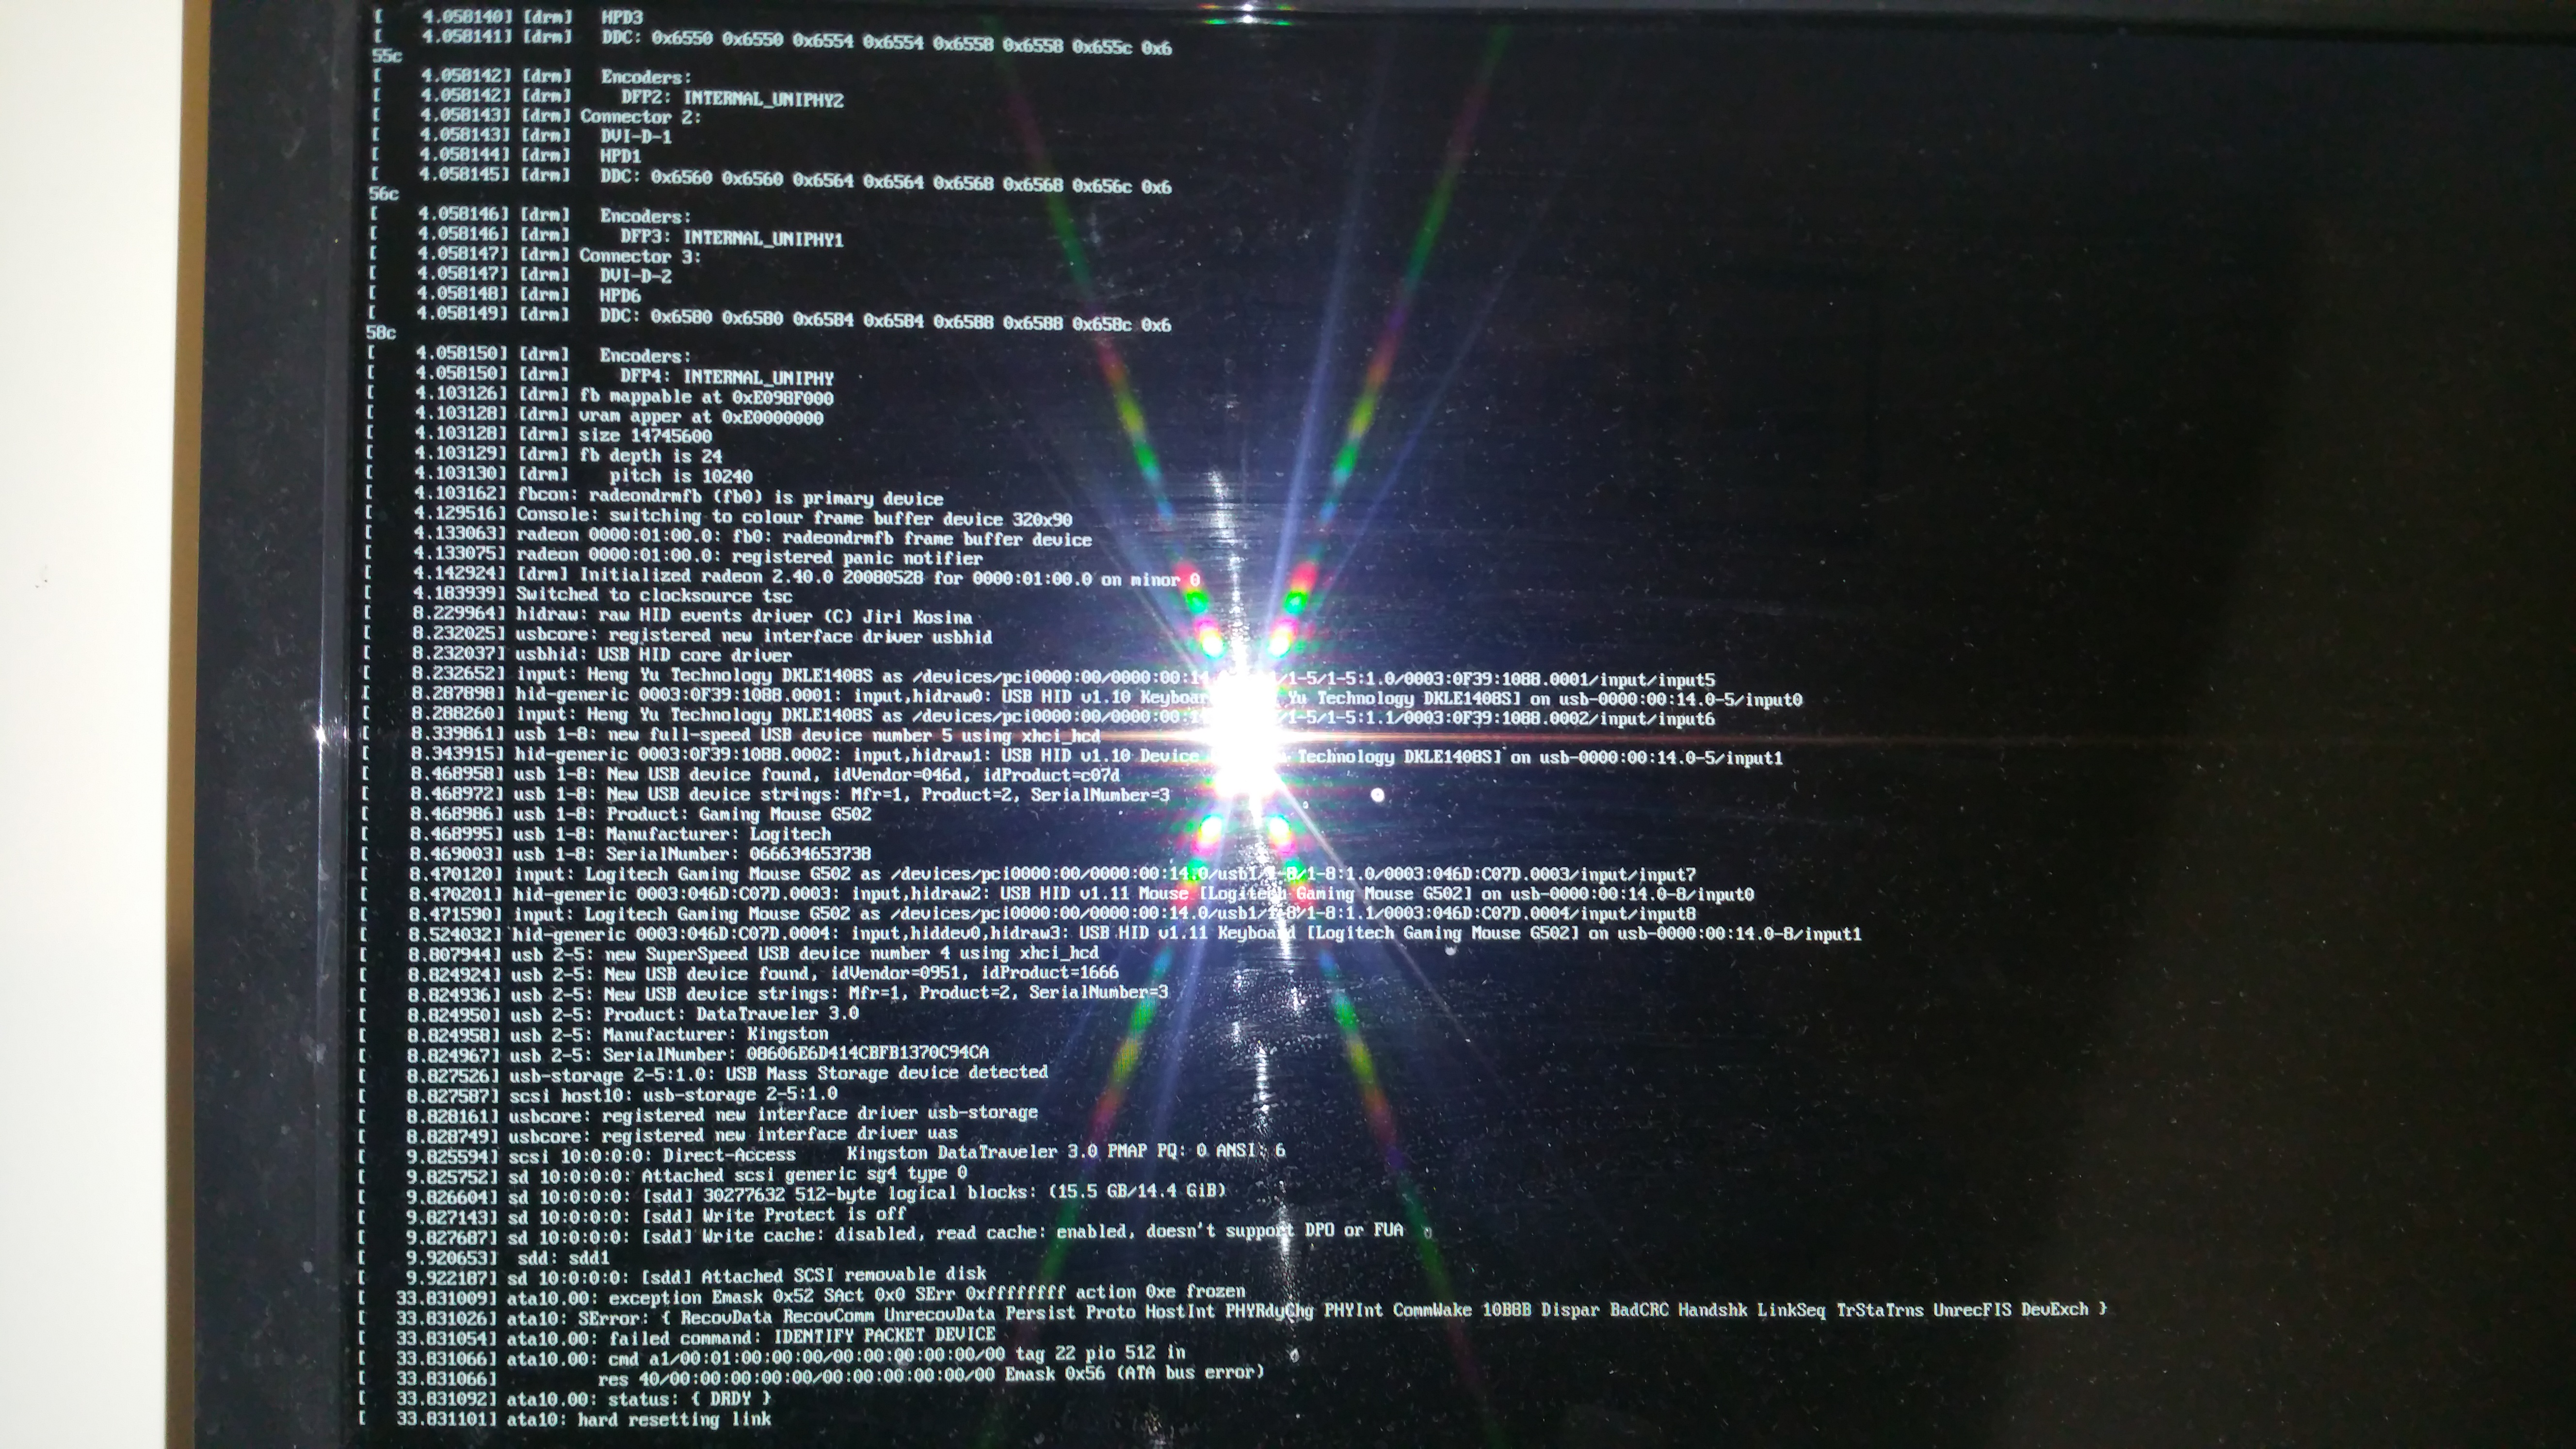 Kernel panic when installing Linux Mint 17 3? - Overclock